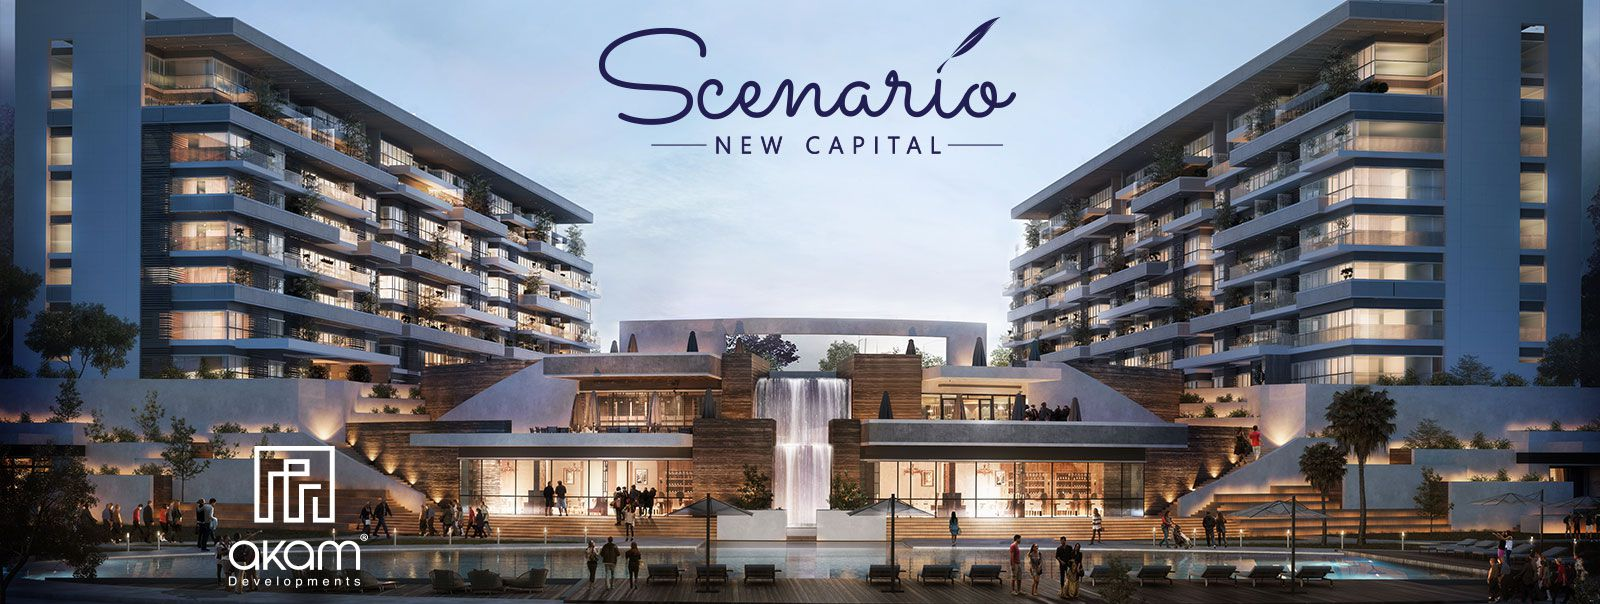 Scenario compound's unites in new capital